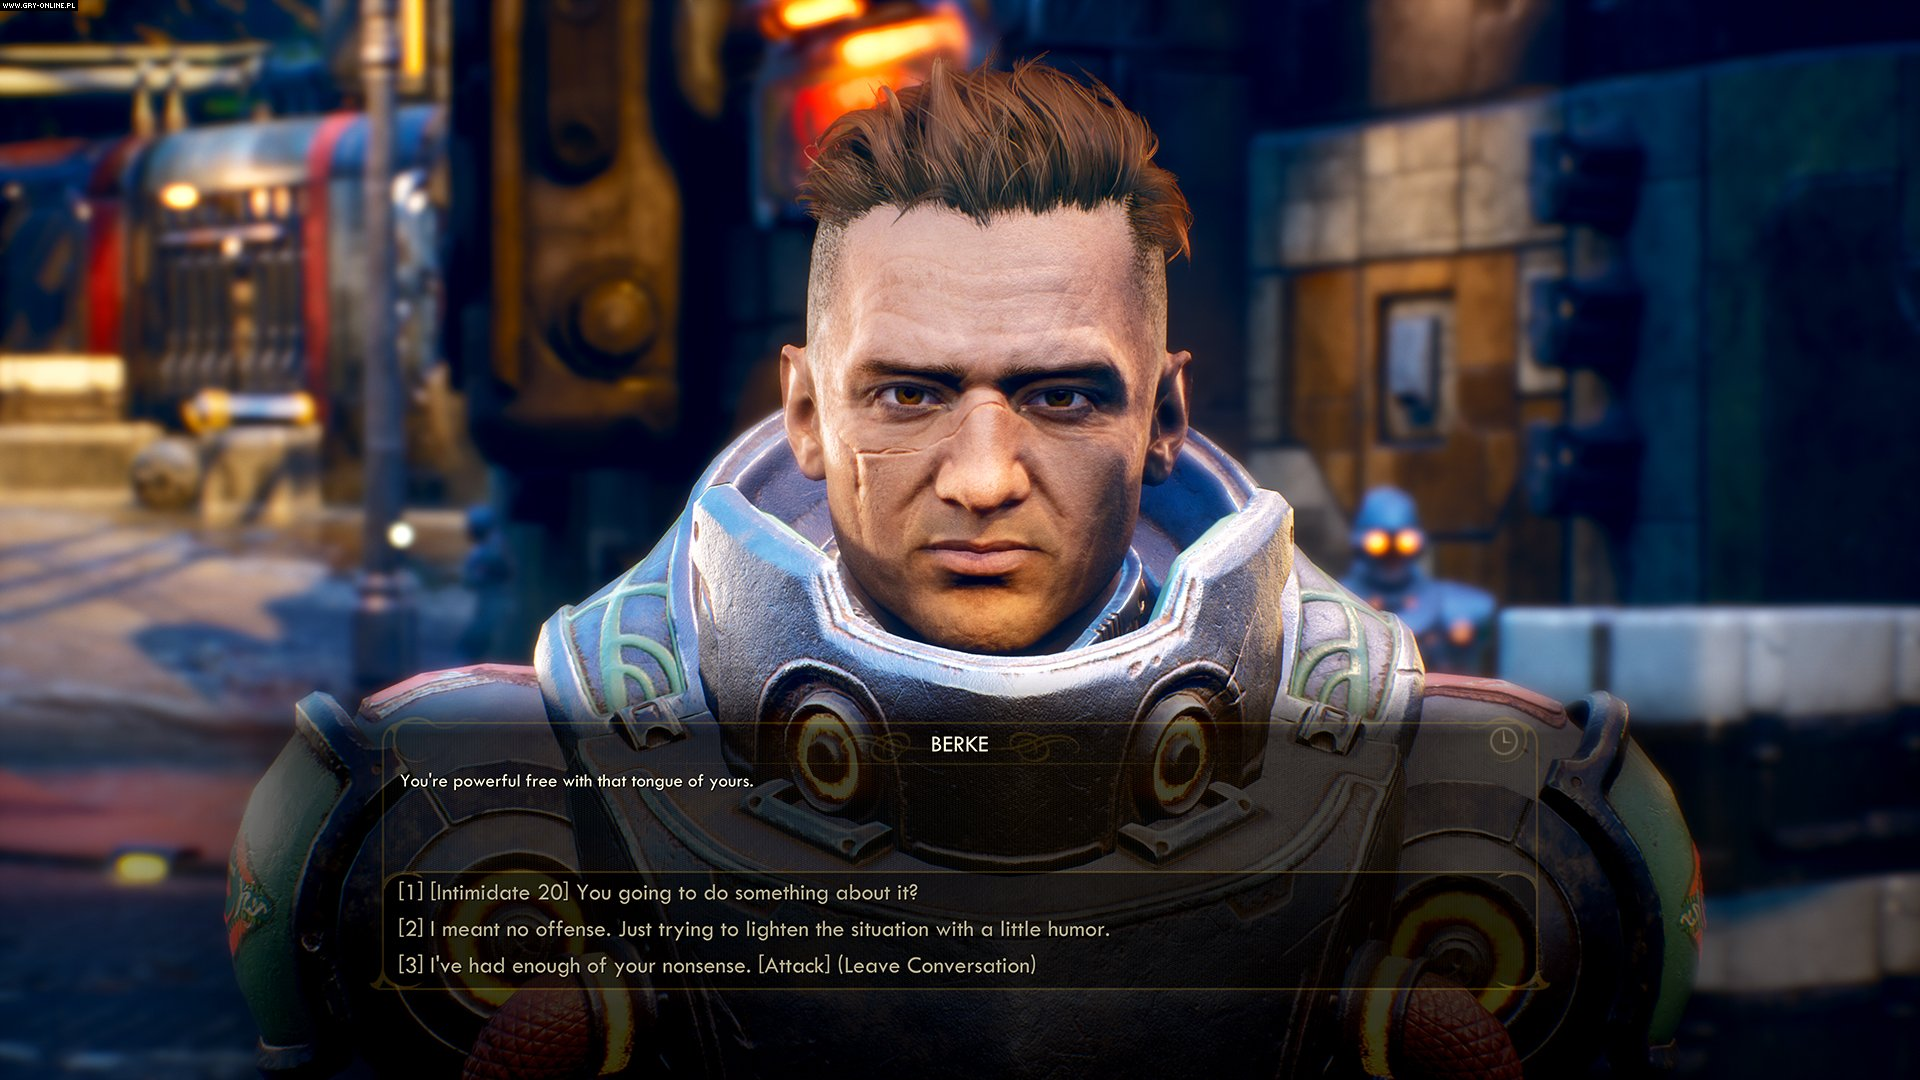 The Outer Worlds PC, PS4, XONE Games Image 5/7, Obsidian Entertainment, Private Division